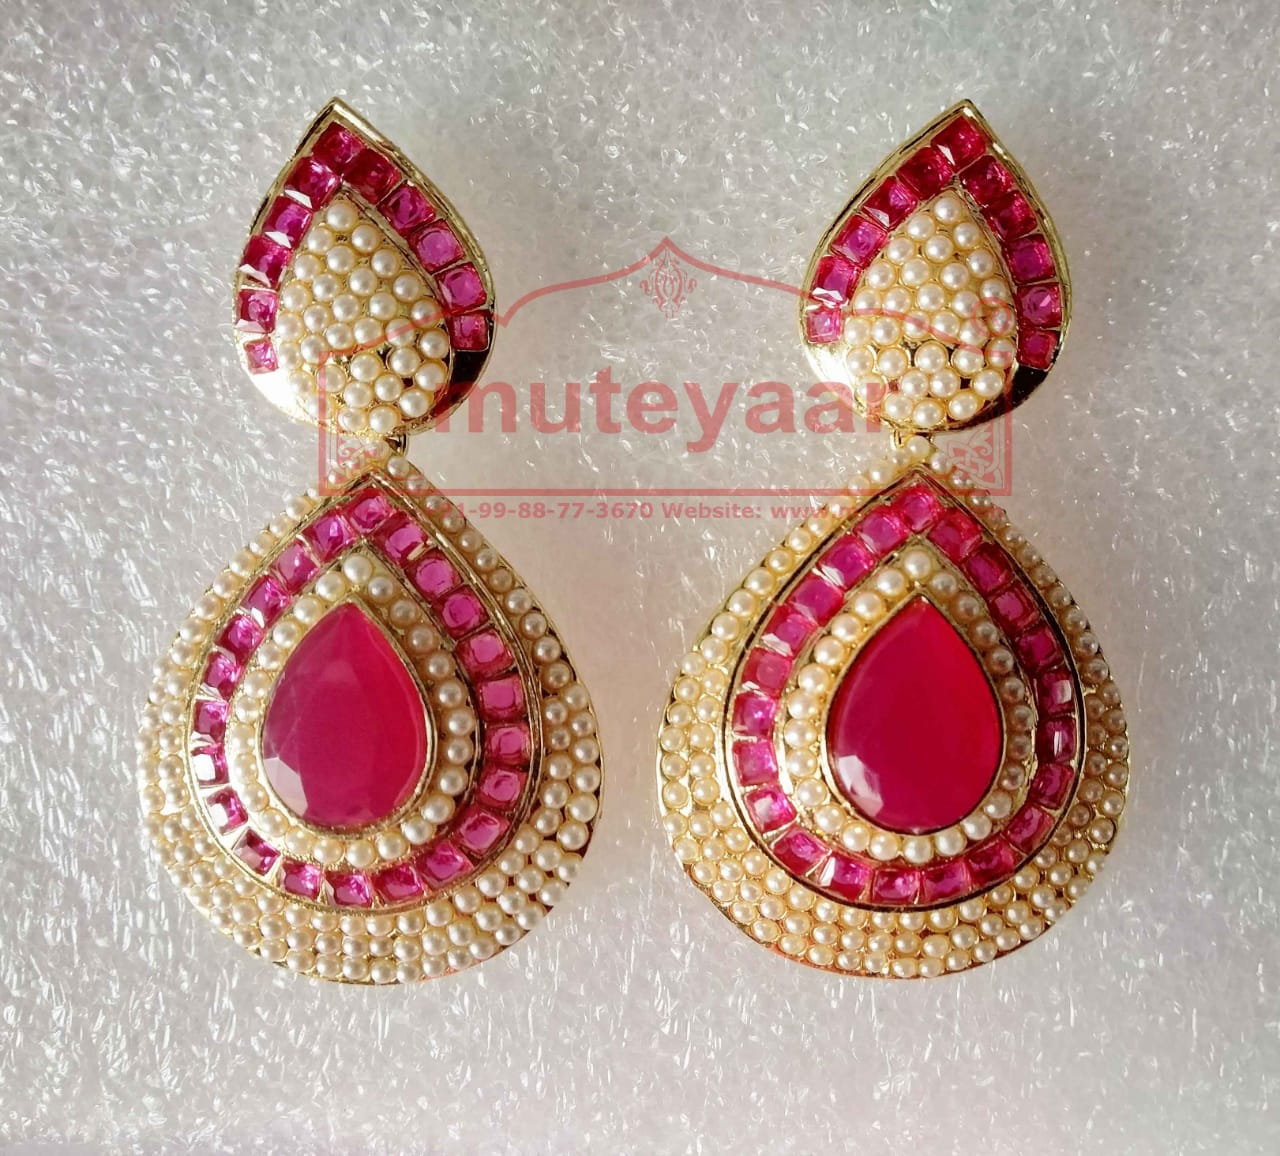 Jadau Work Gold Polished Traditional Punjabi Earrings J0438 1